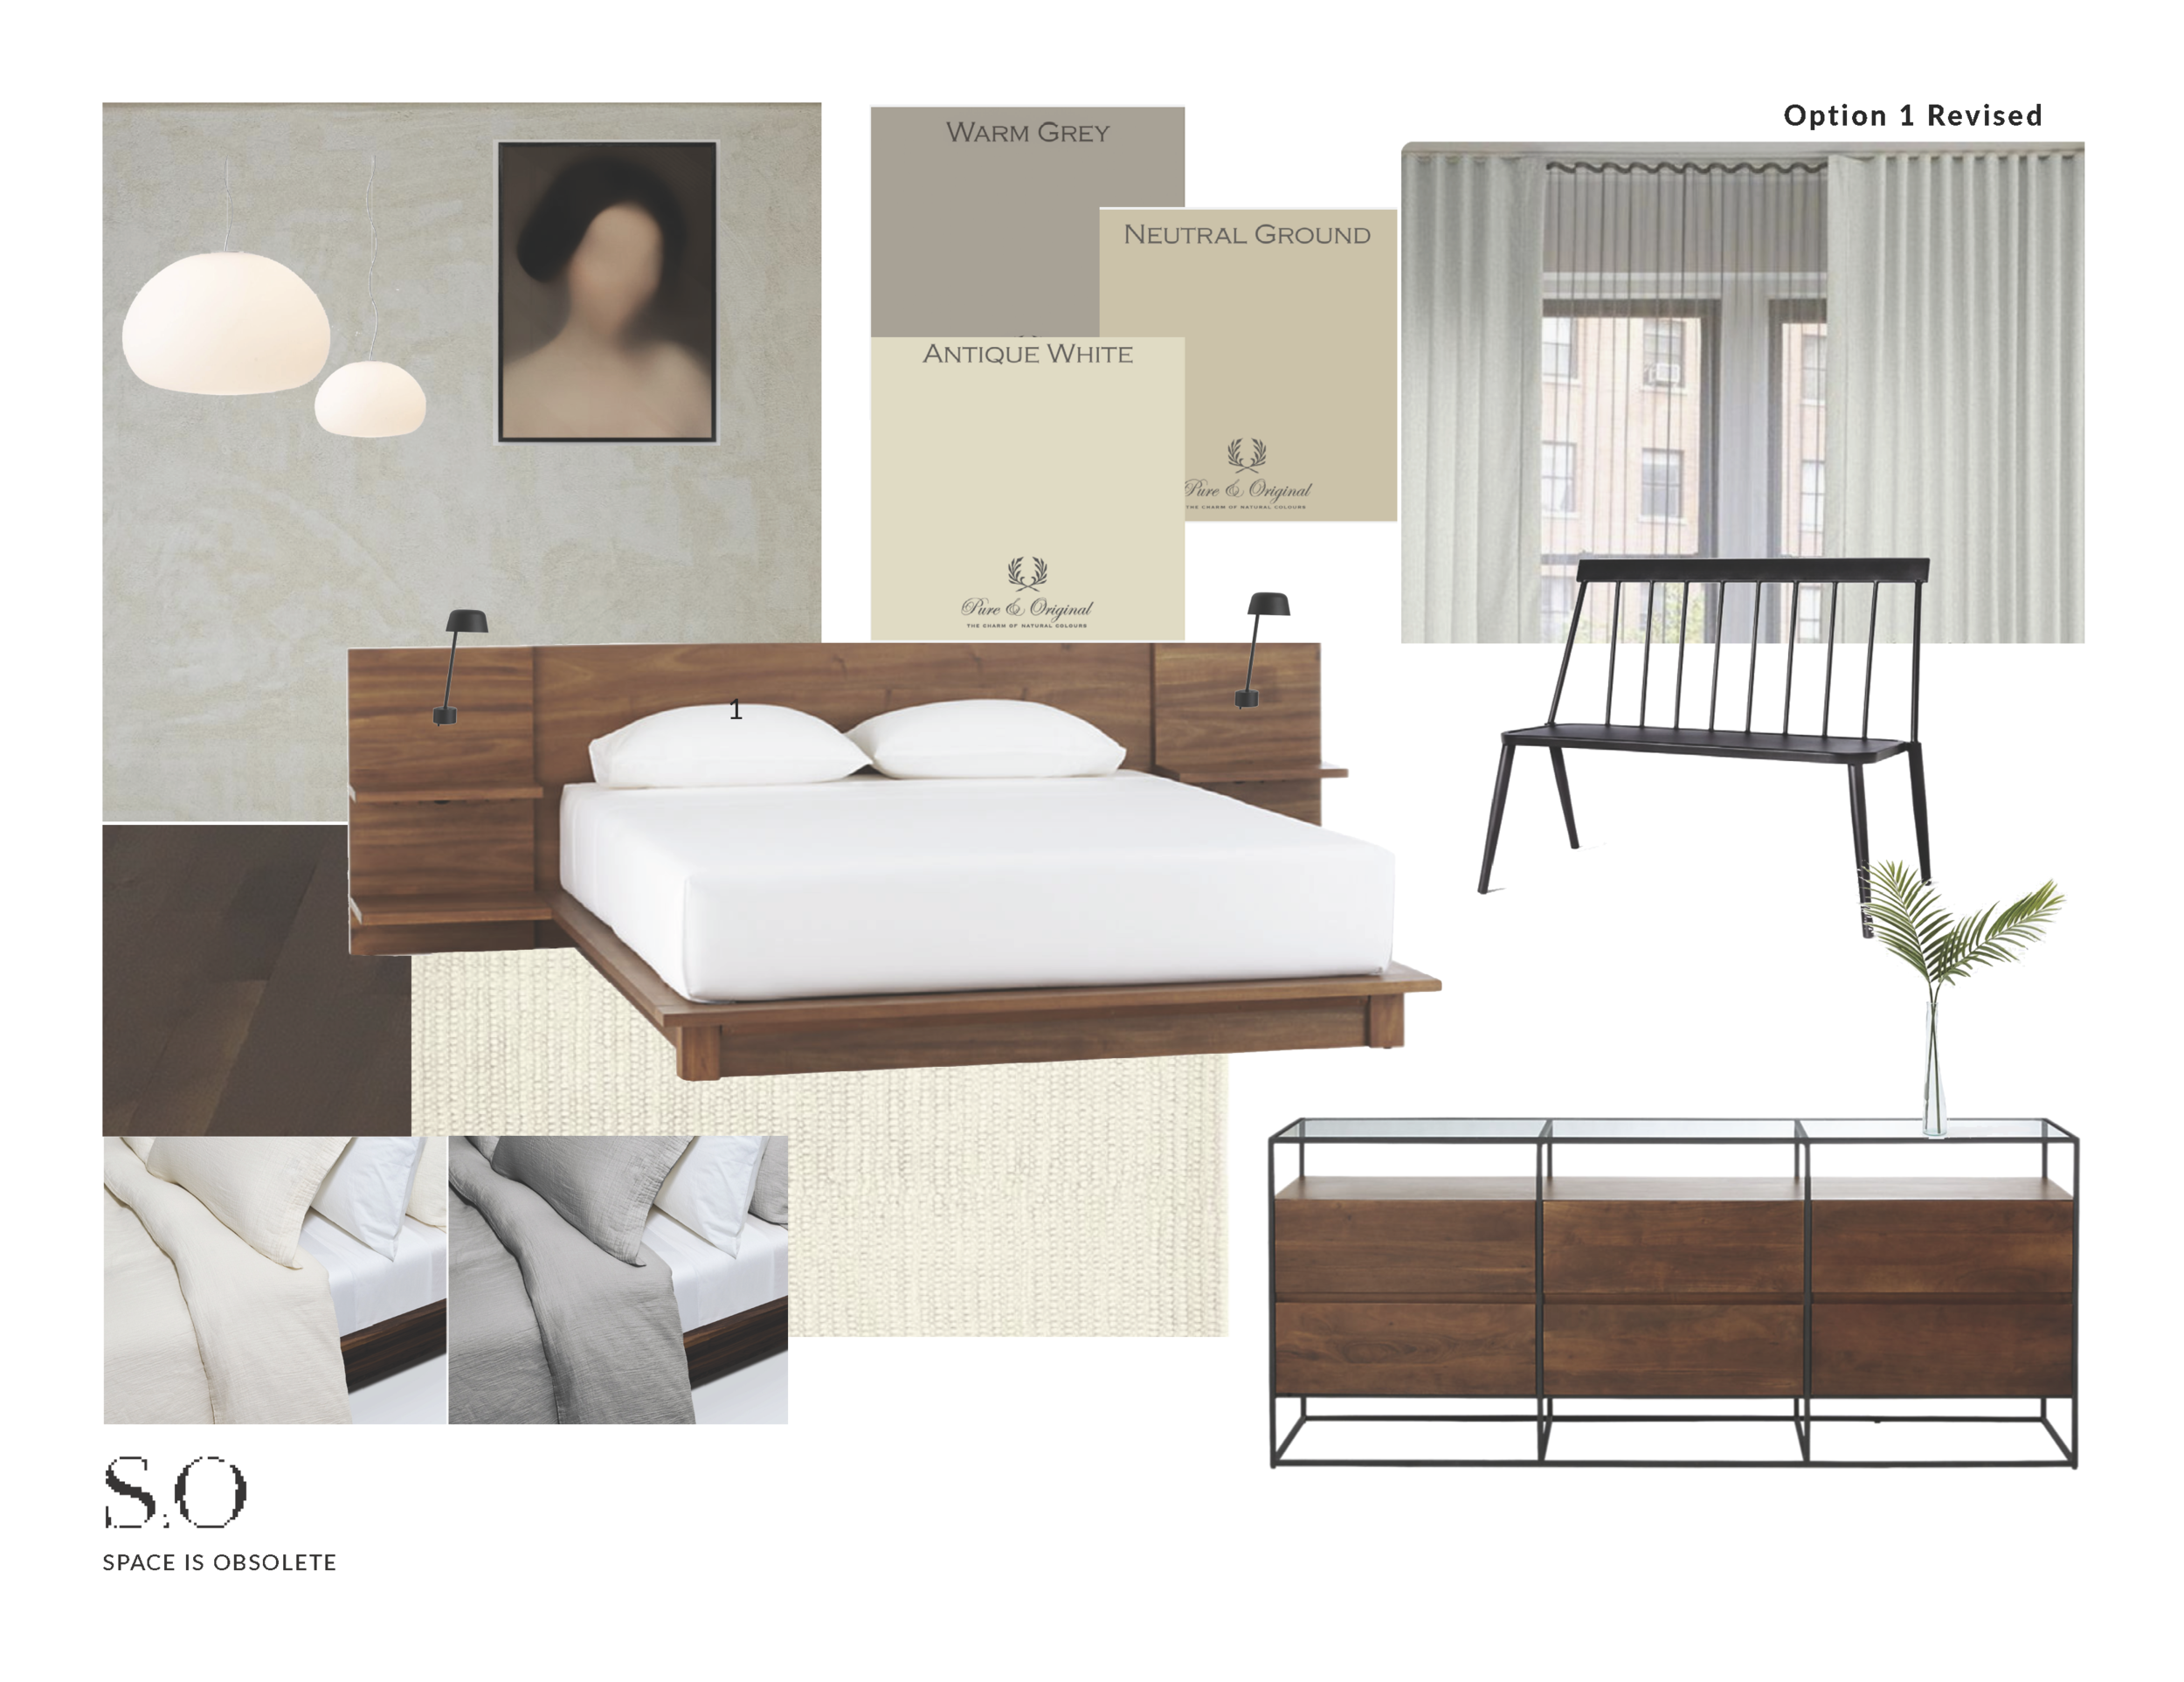 Zionts Master Suite Revised_Page_1.png